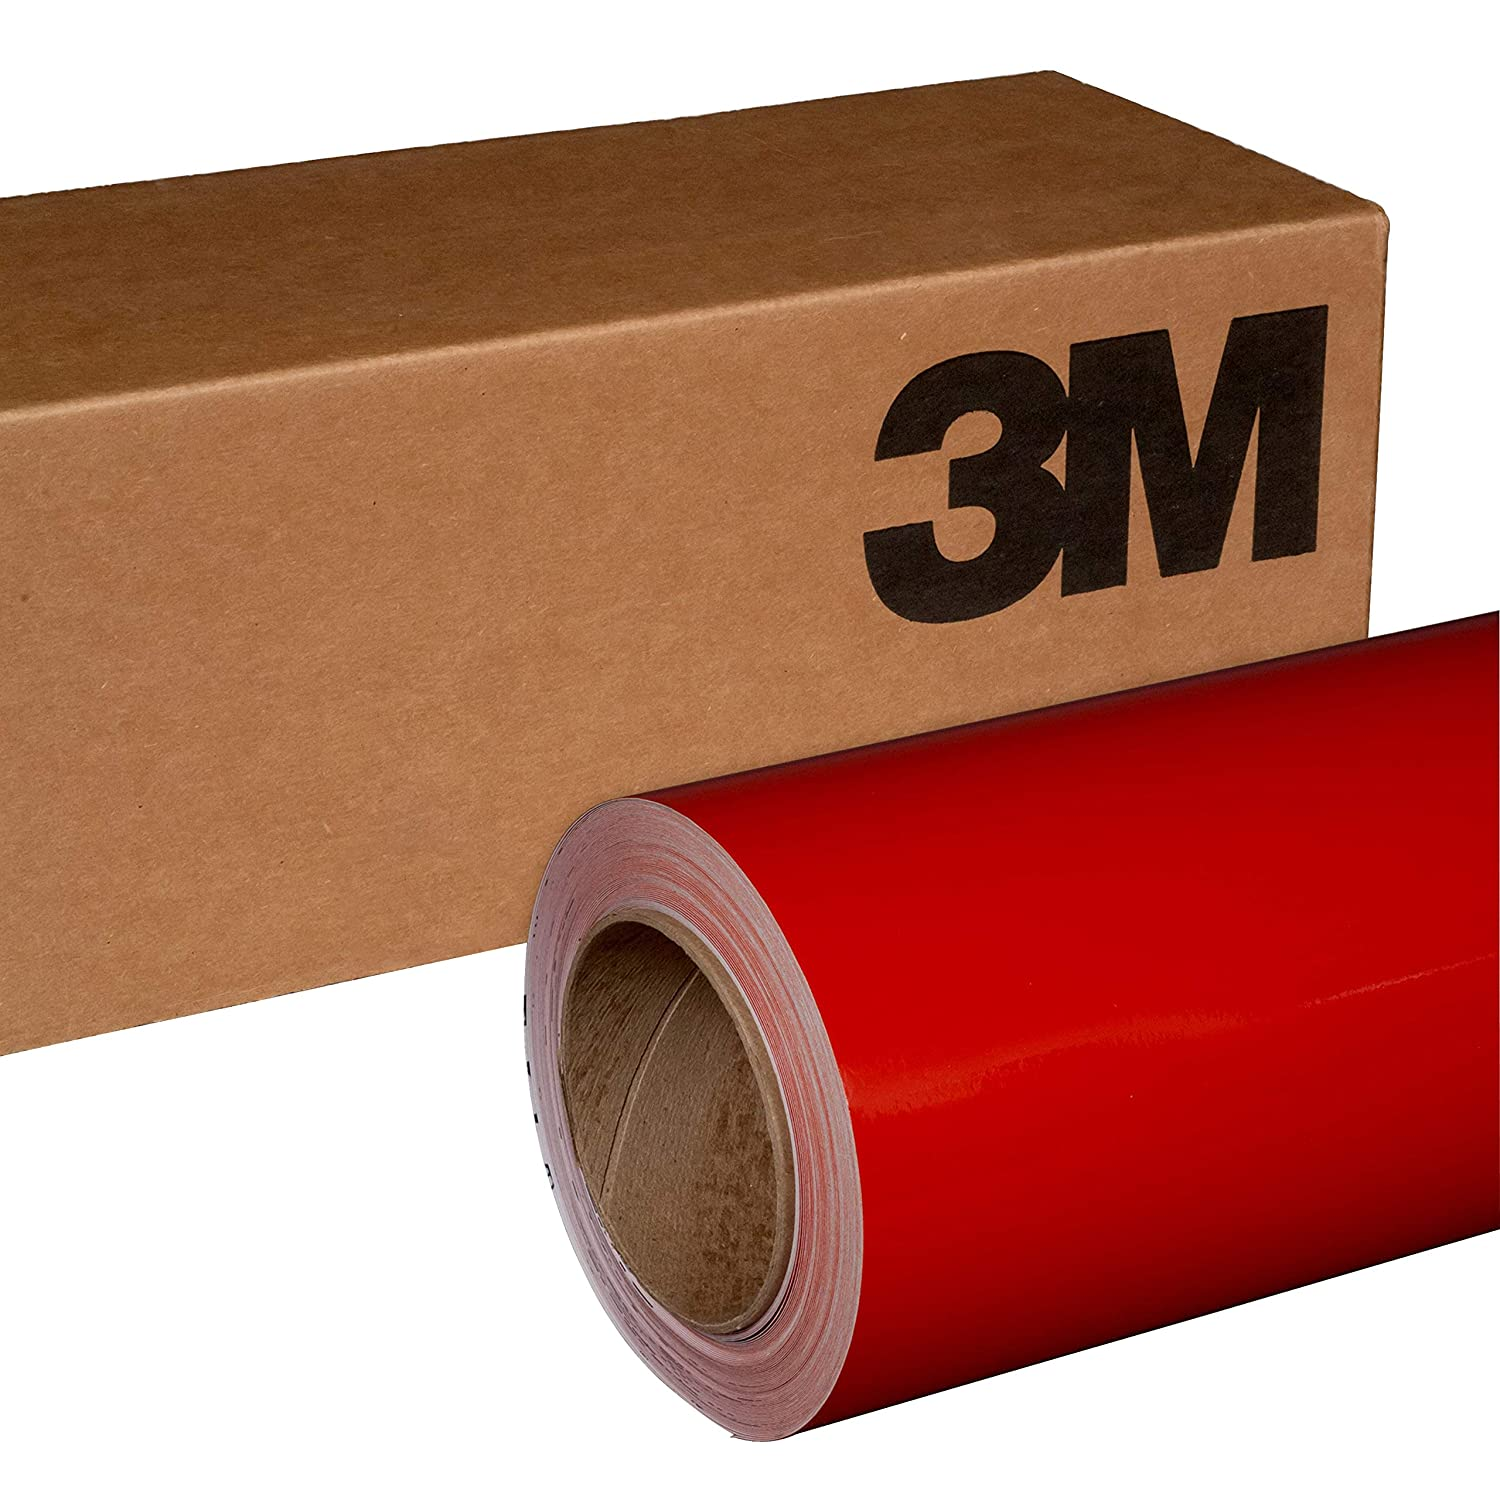 3M 1080 G83 GLOSS DARK RED 5ft x 1ft (5 Sq/ft) Car Wrap Vinyl Film FBA_1080-G83